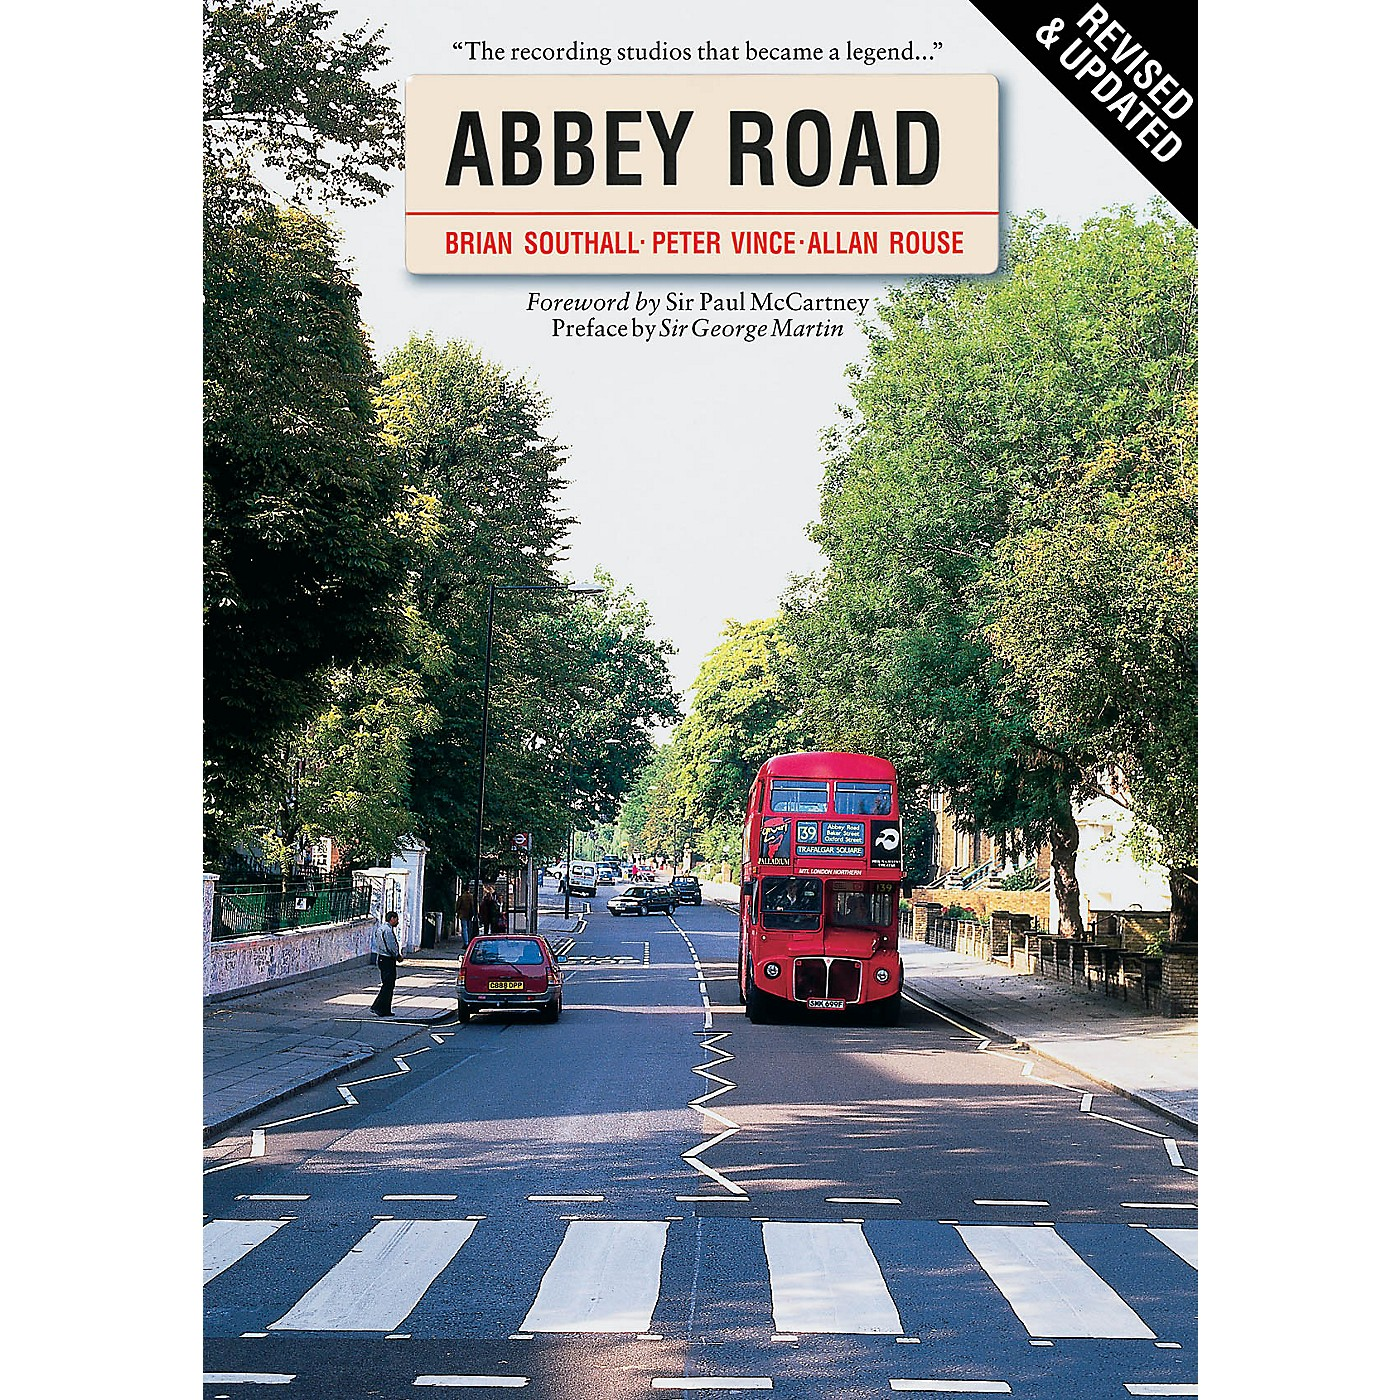 Omnibus Abbey Road - Revised & Updated: The Recording Studio That Became a Legend Omnibus Press Softcover by Southall thumbnail